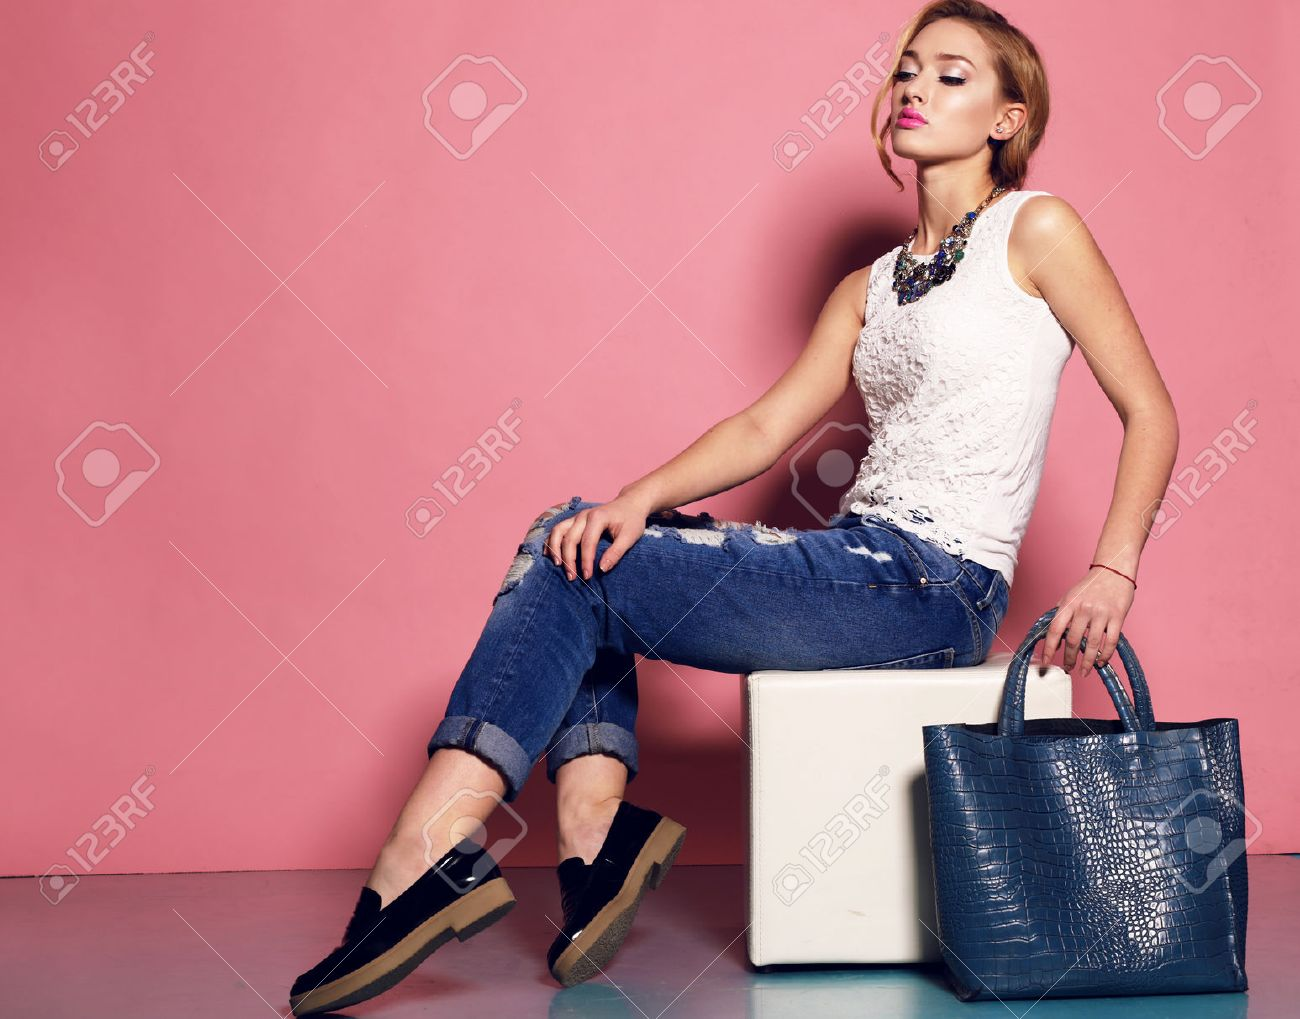 fashion studio photo of gorgeous young woman with blond curly hair wears elegant blouse and jeans,holding a big bag in hands Stock Photo - 47708608